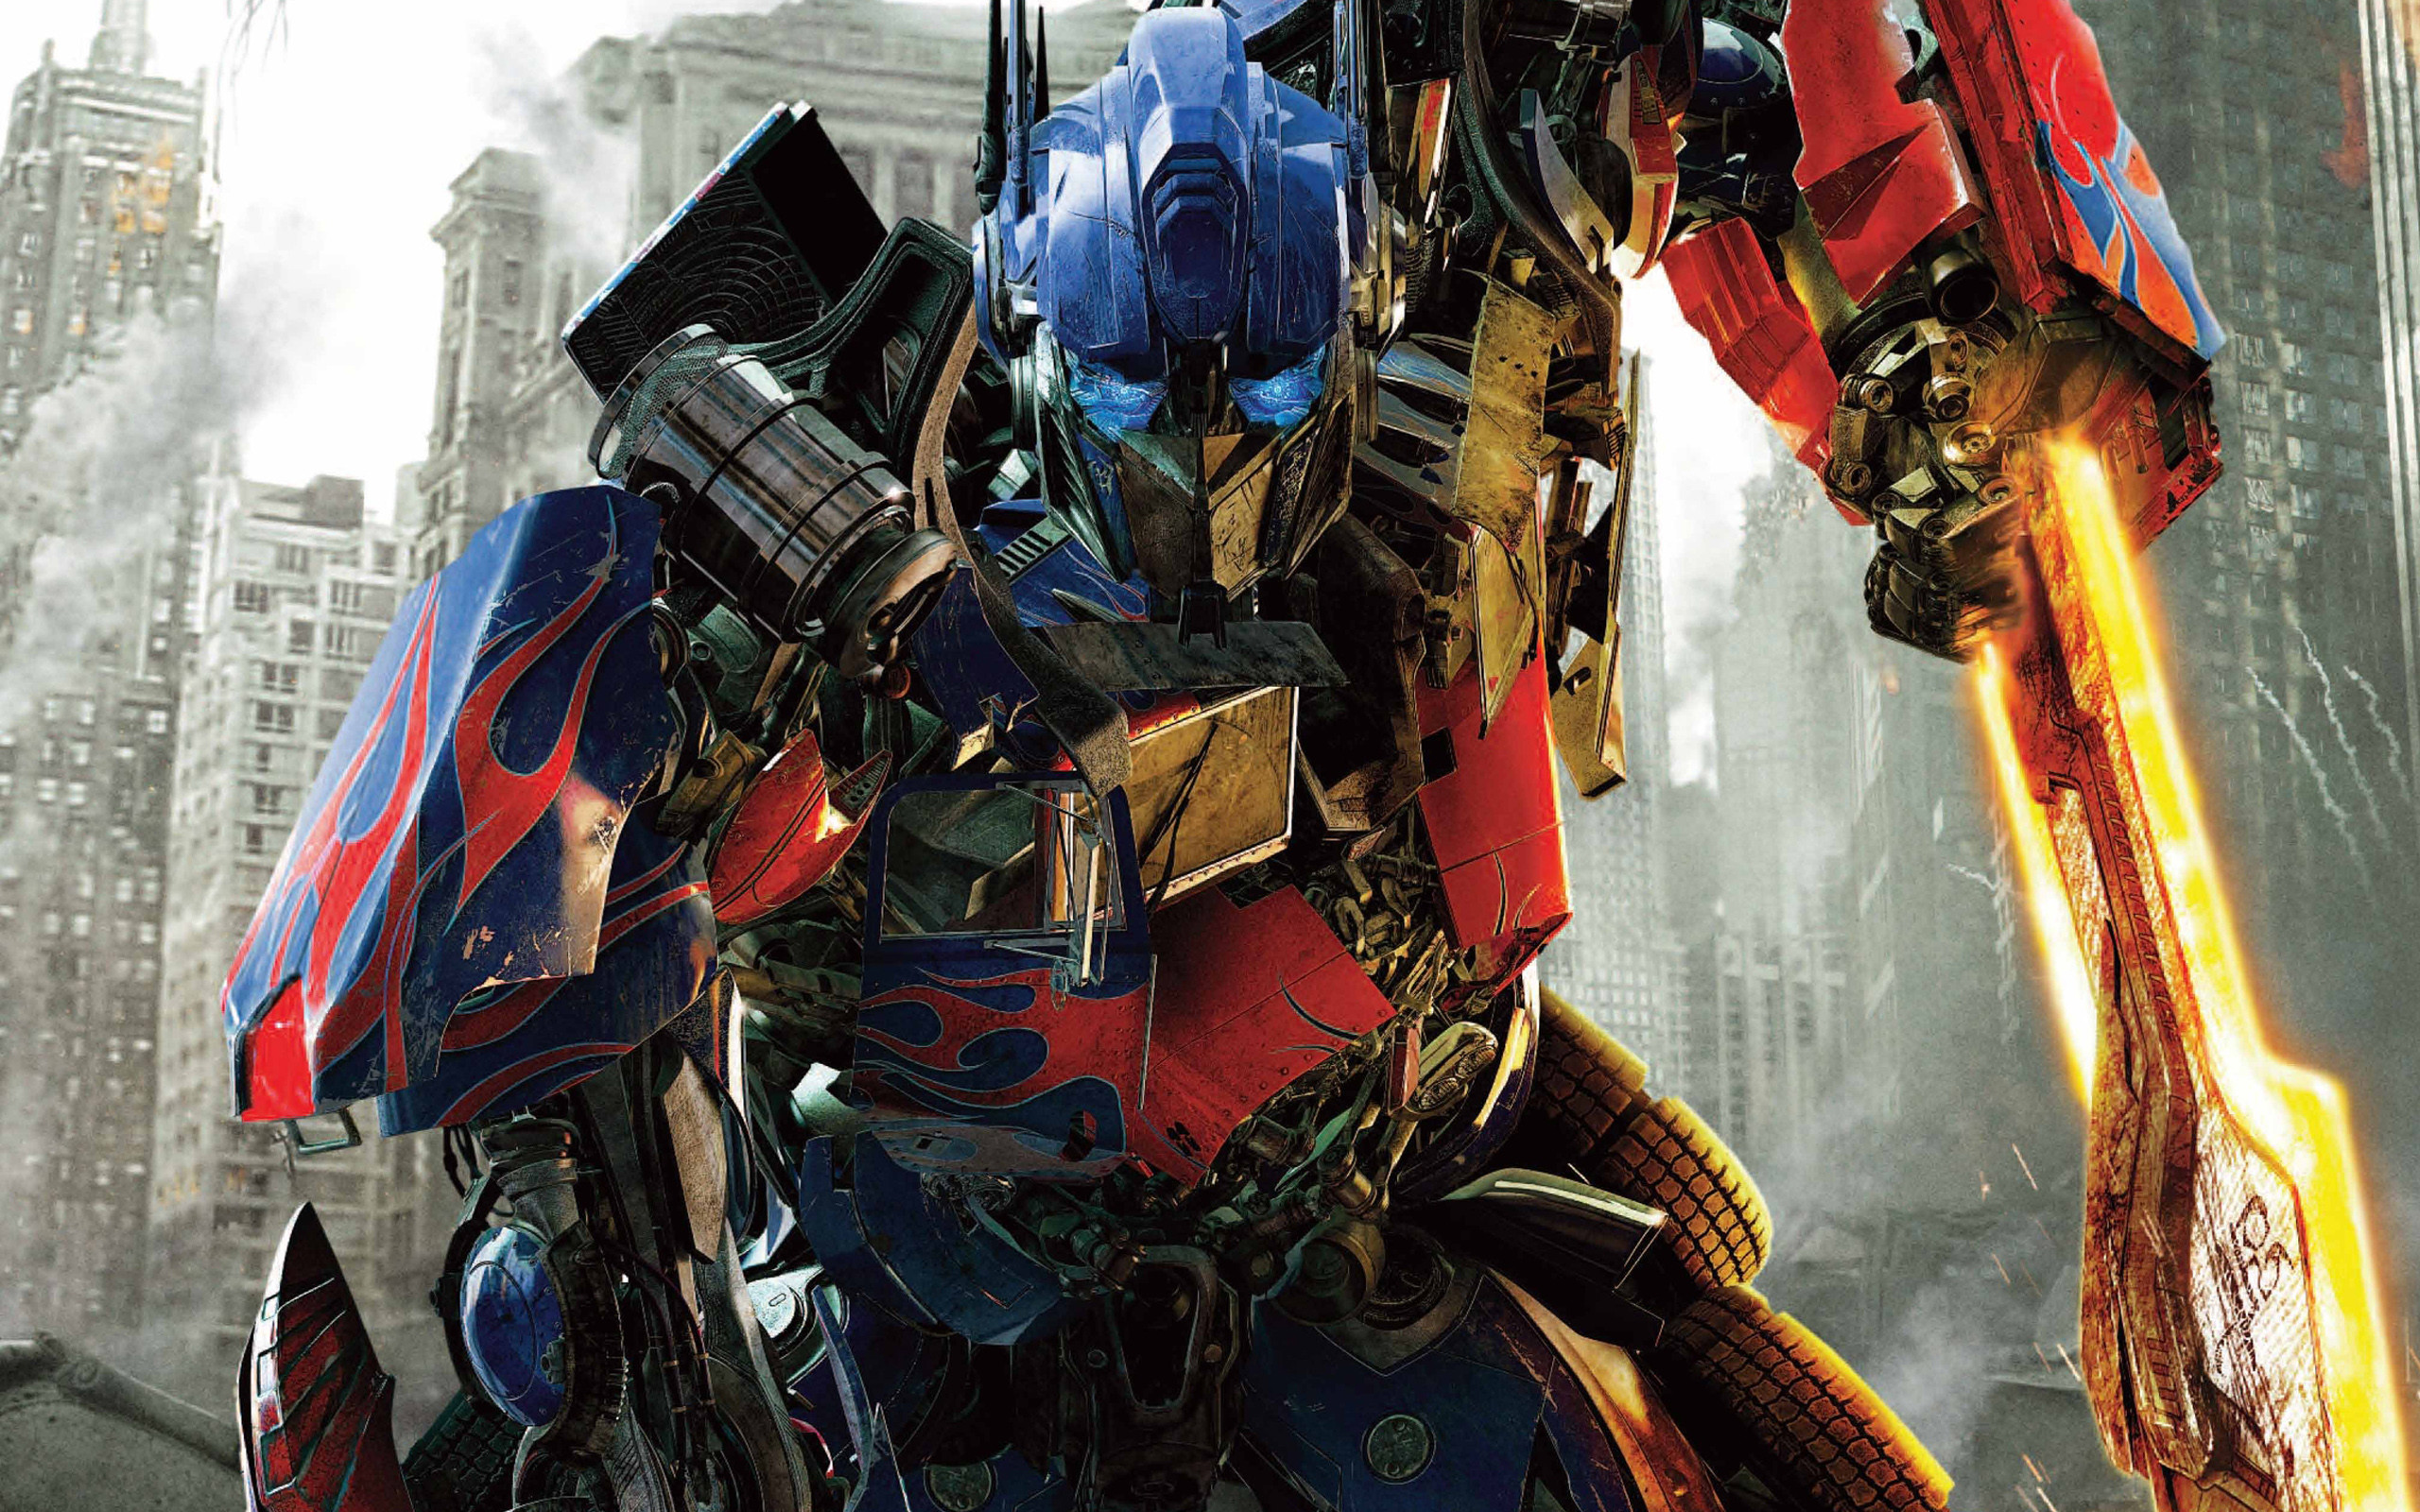 Res: 2560x1600, Which Transformers Character Are You? | PlayBuzz